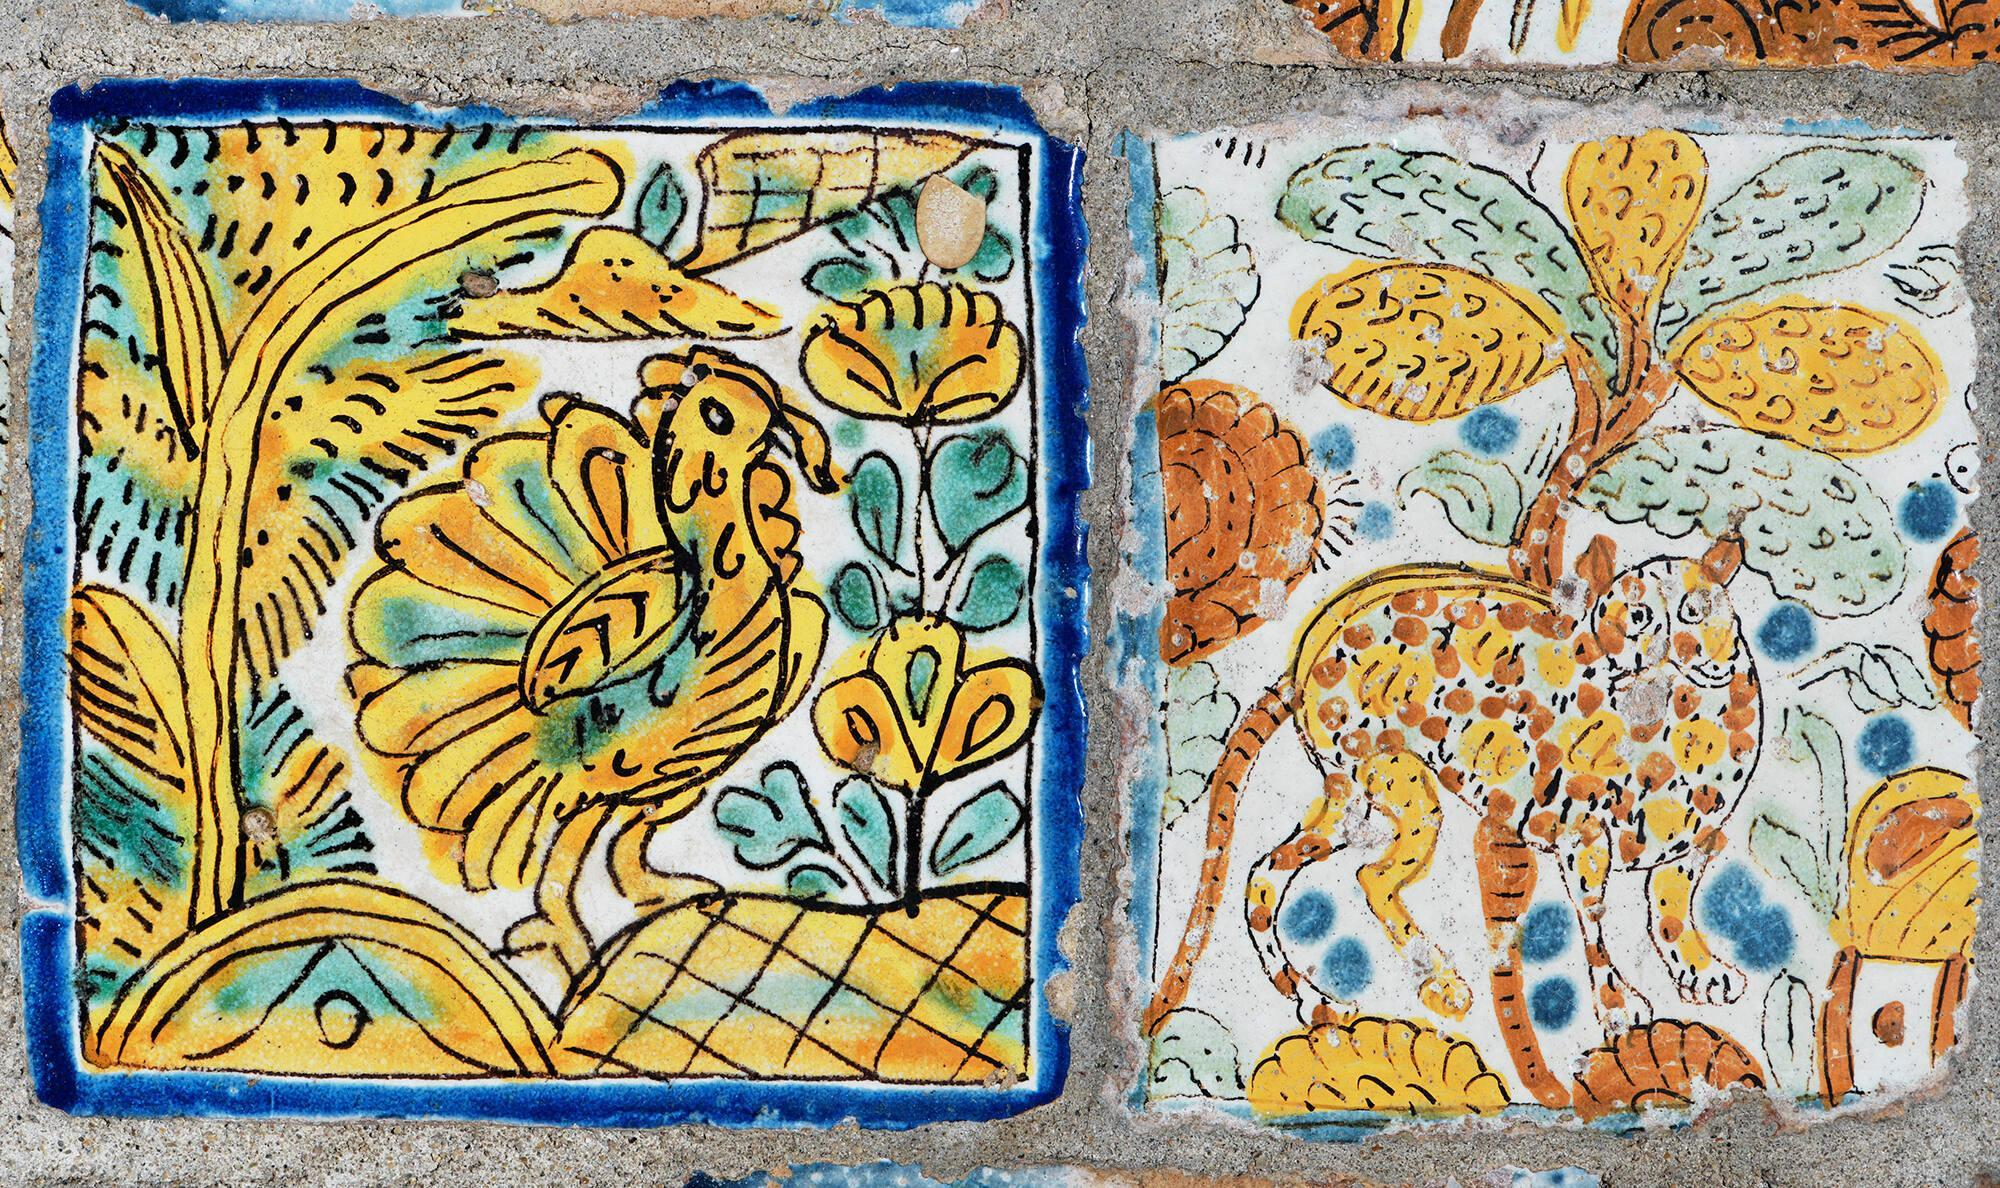 A tile with a bird painted on it on the left and a tile with a big cat painted on it on the right.